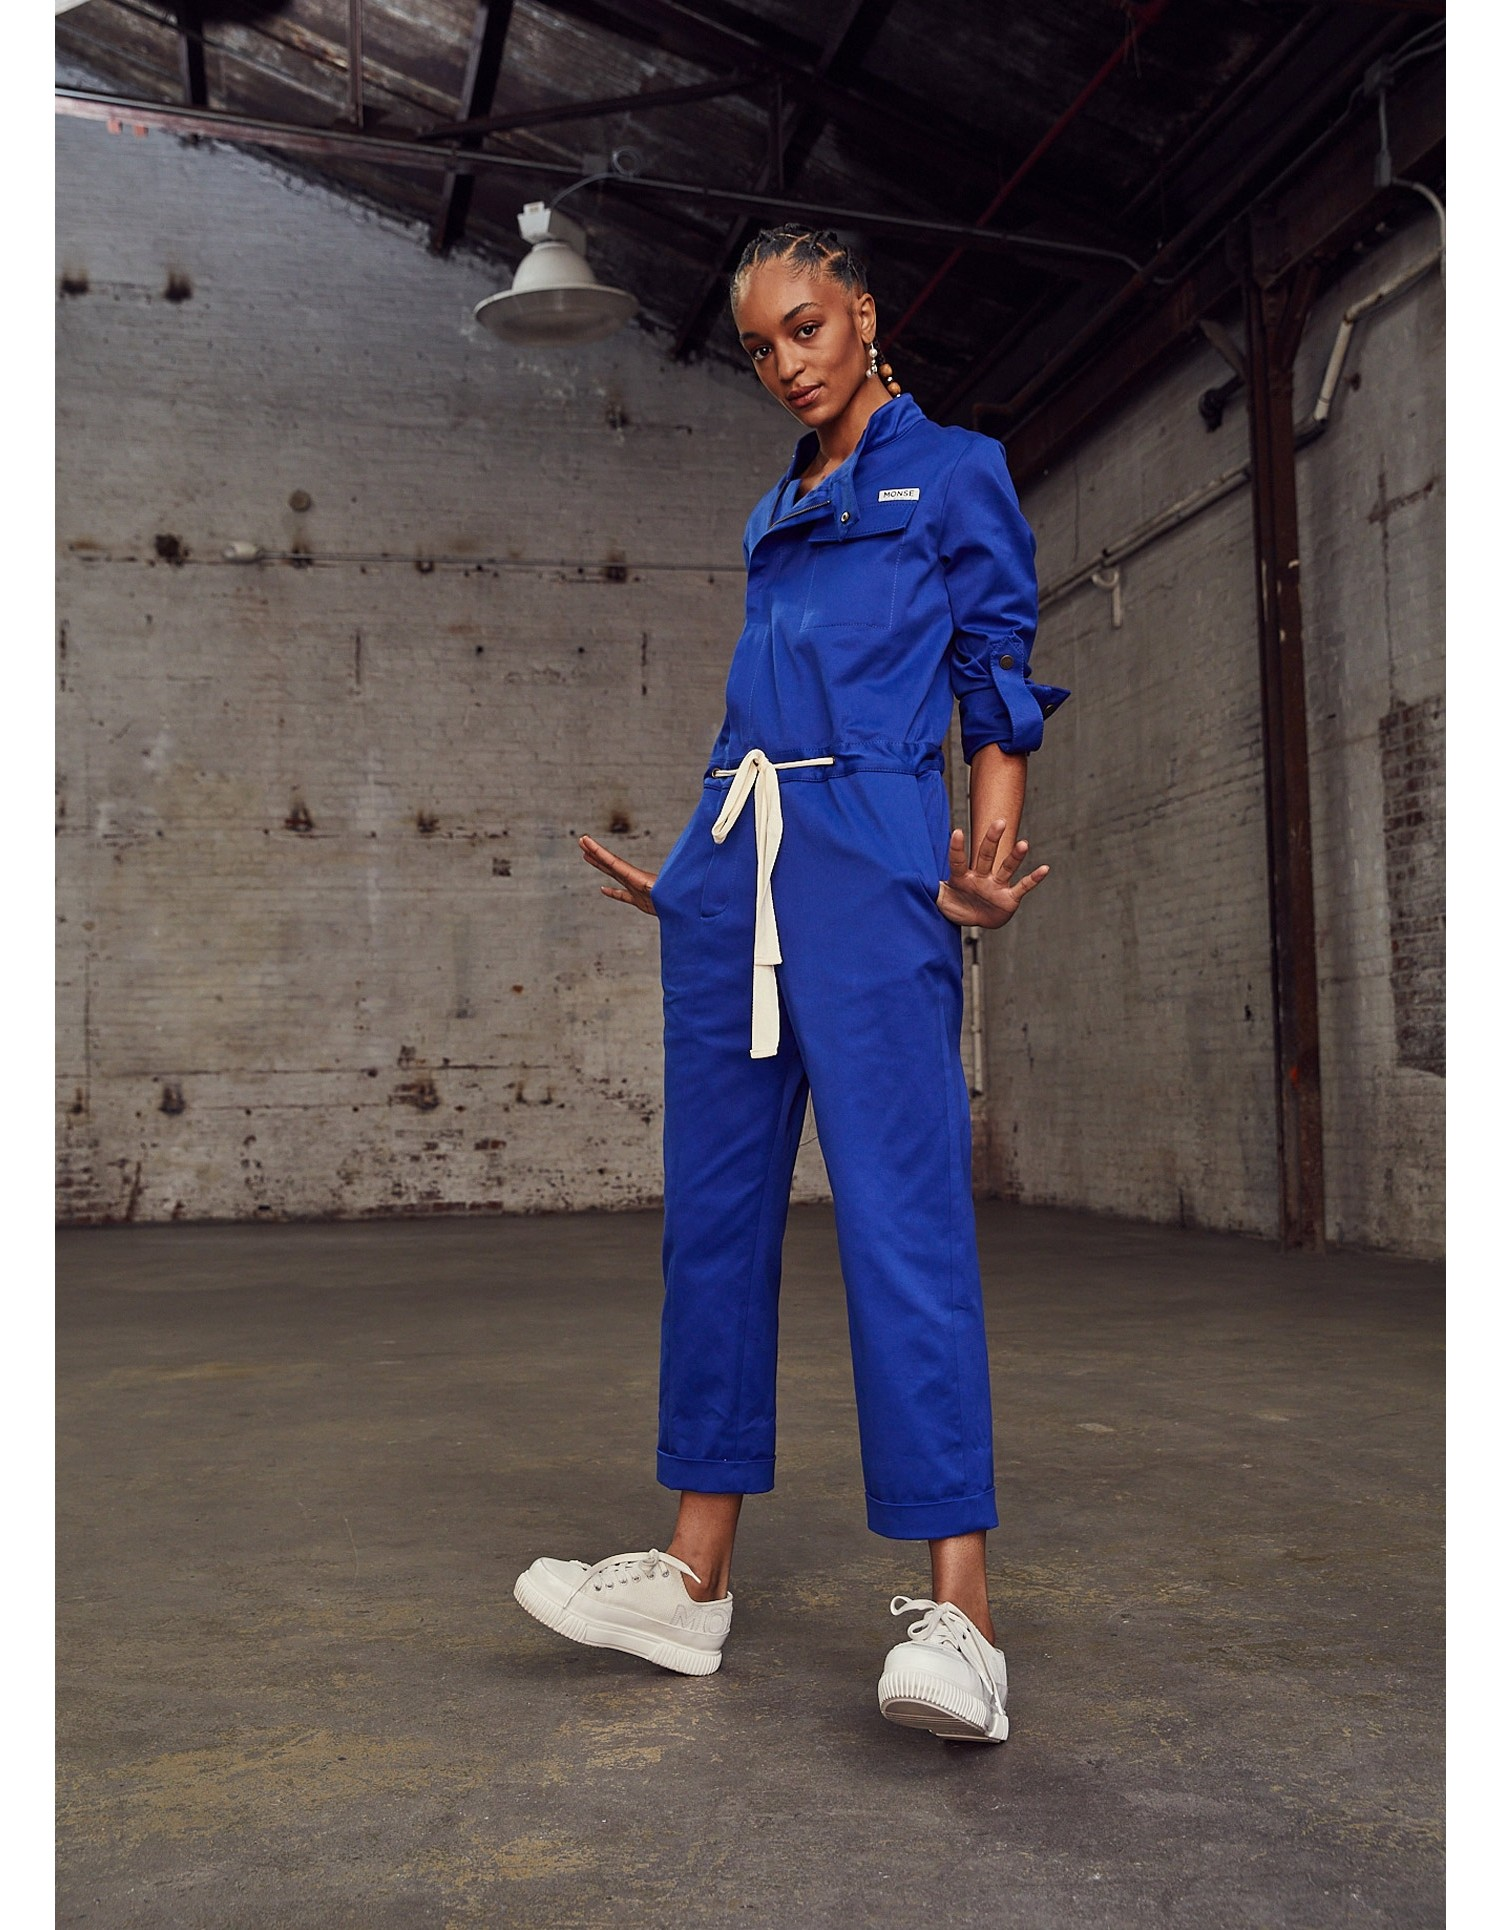 MONSE Racer Jumpsuit in Electric Blue on Model Front Side View